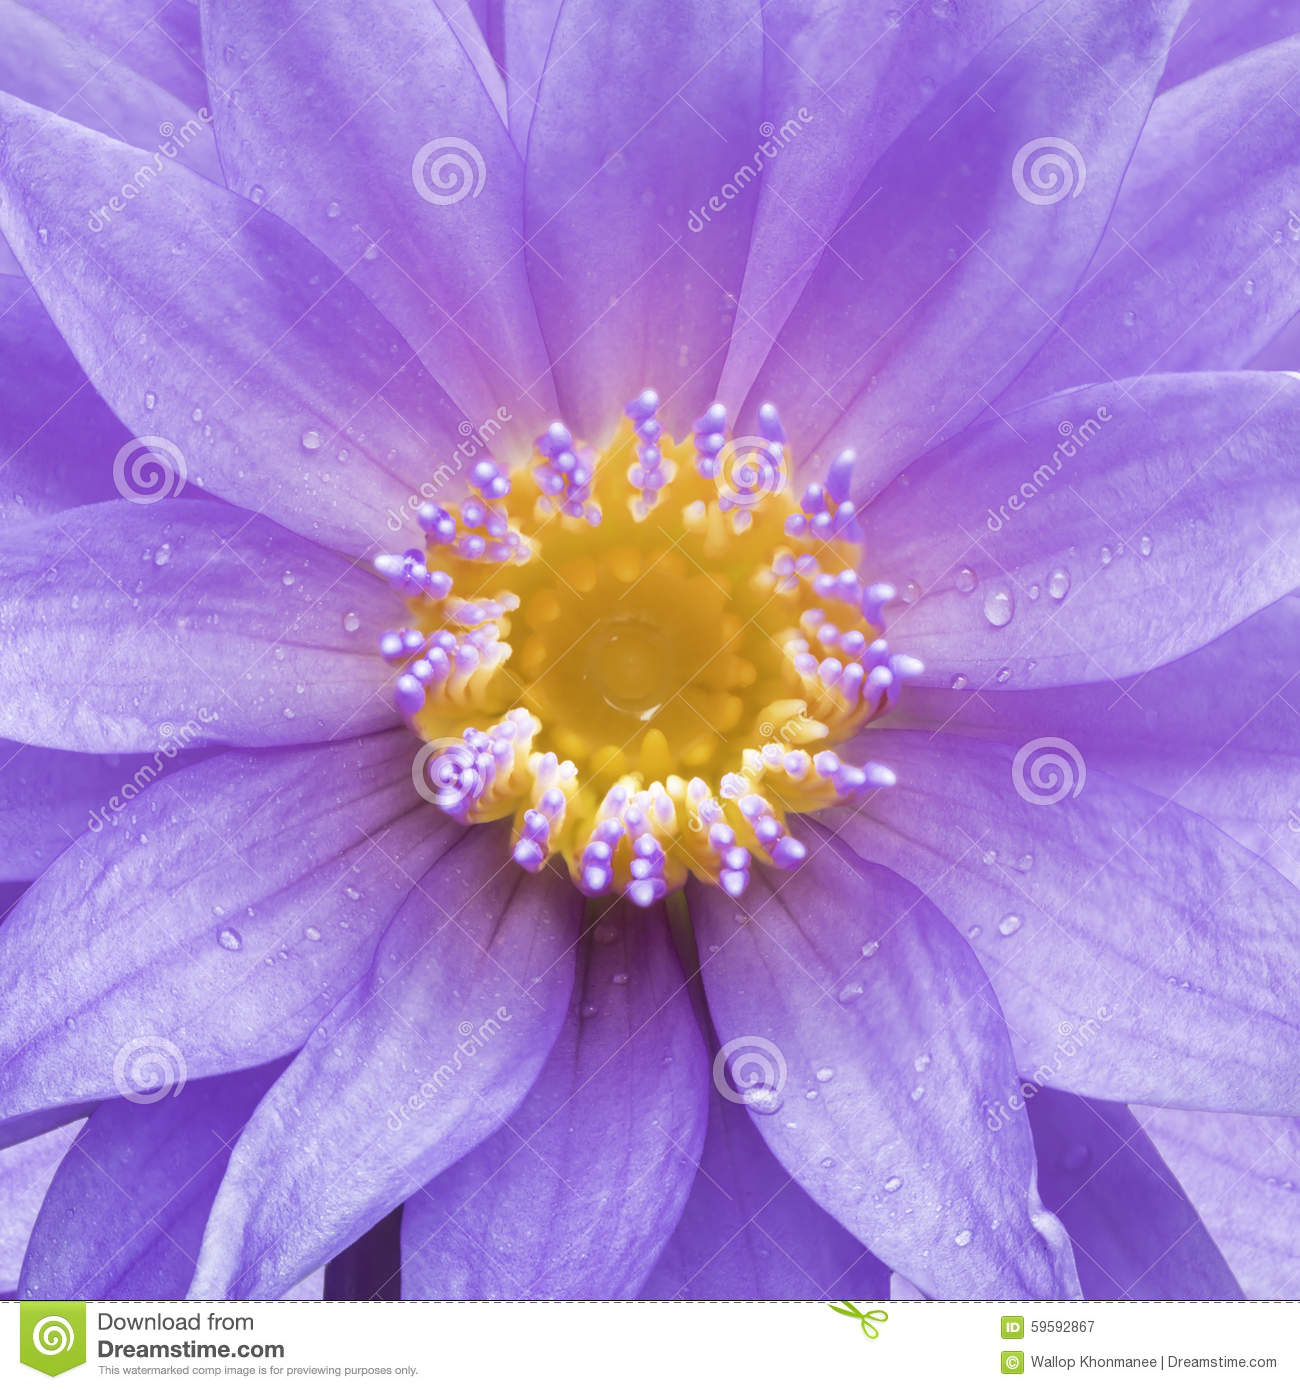 Lotus Is Water Lily In The Garden Stock Image Image Of Healthcare